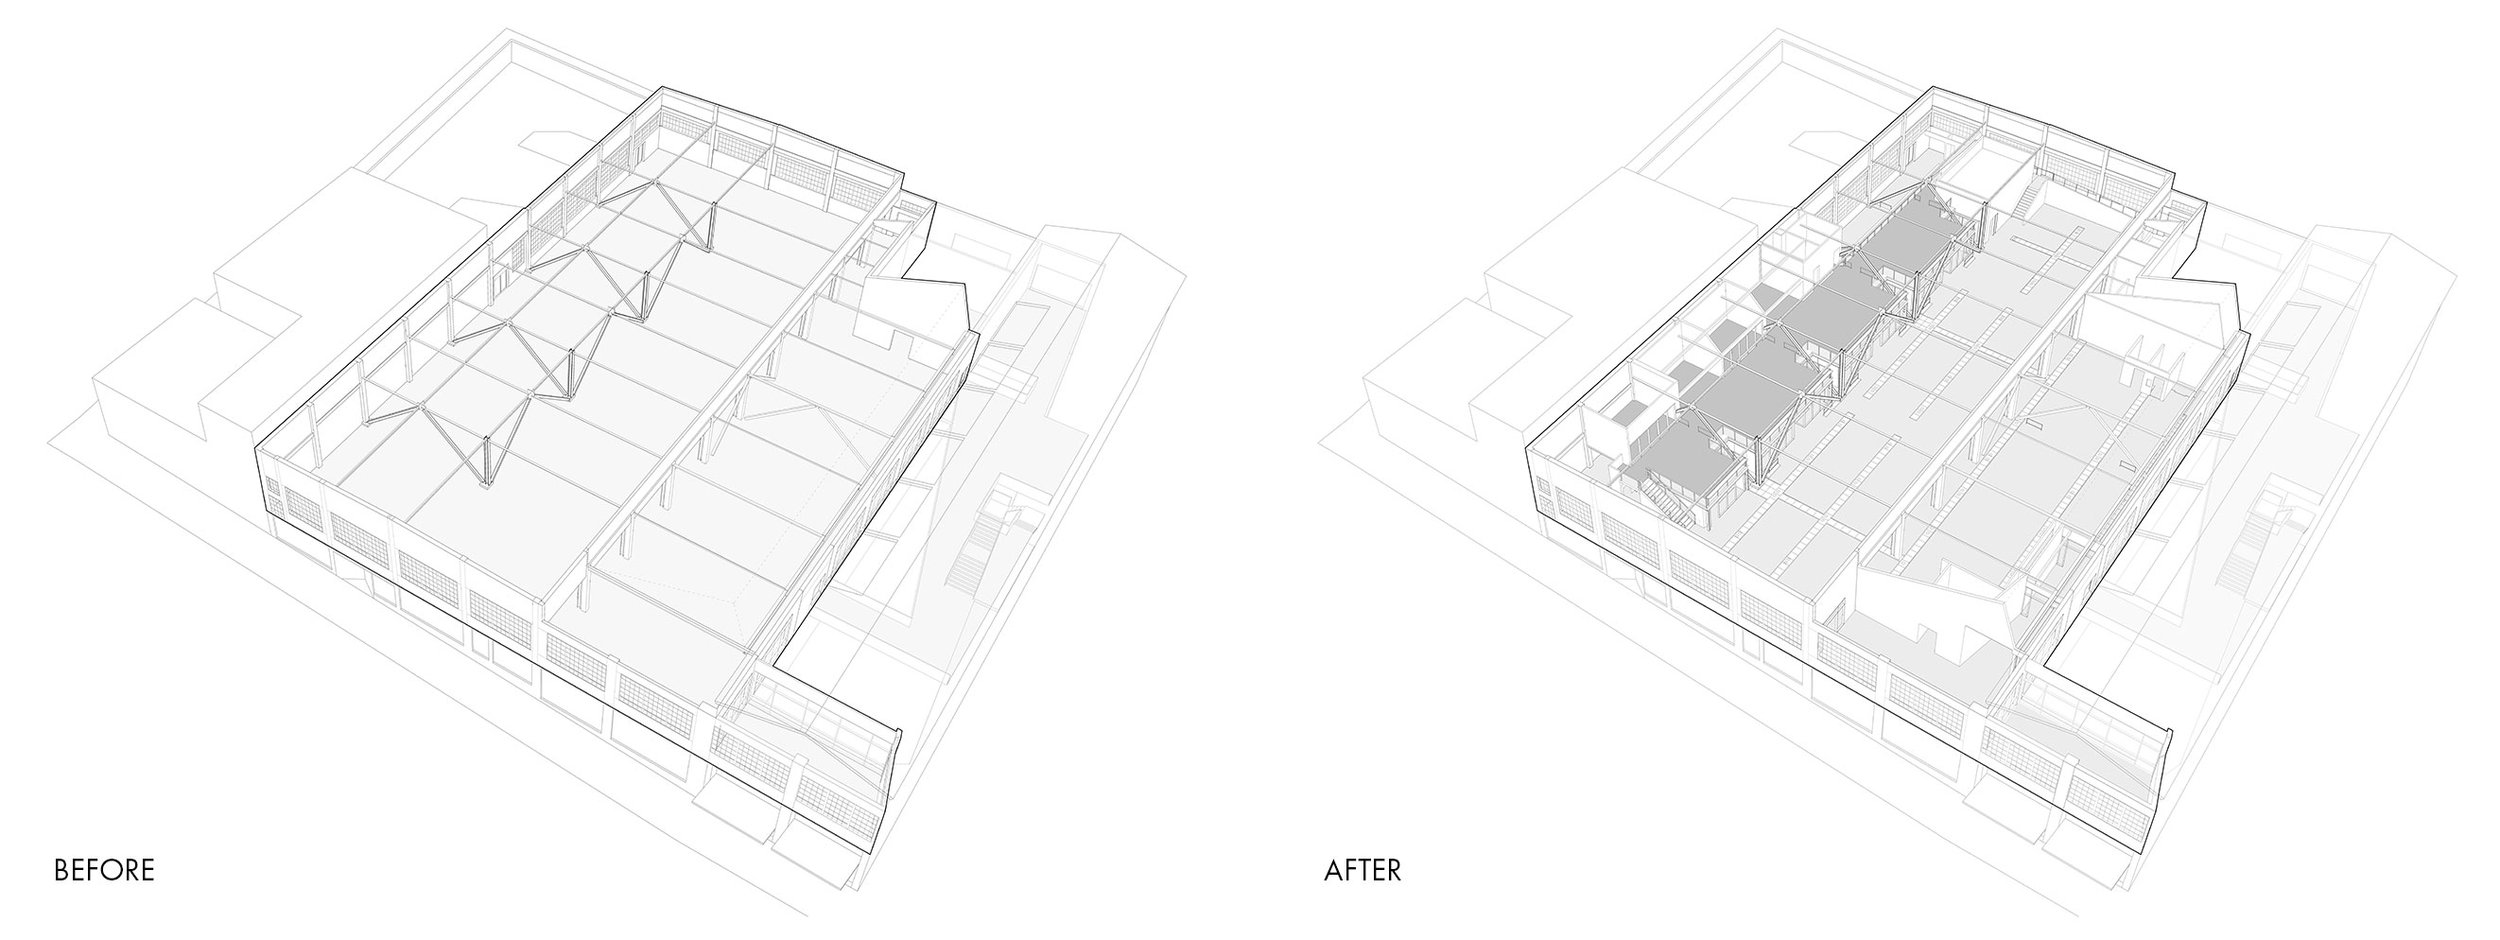 San Francisco Workplace, Office, Adaptive Reuse, Tech Company, Before After Diagram